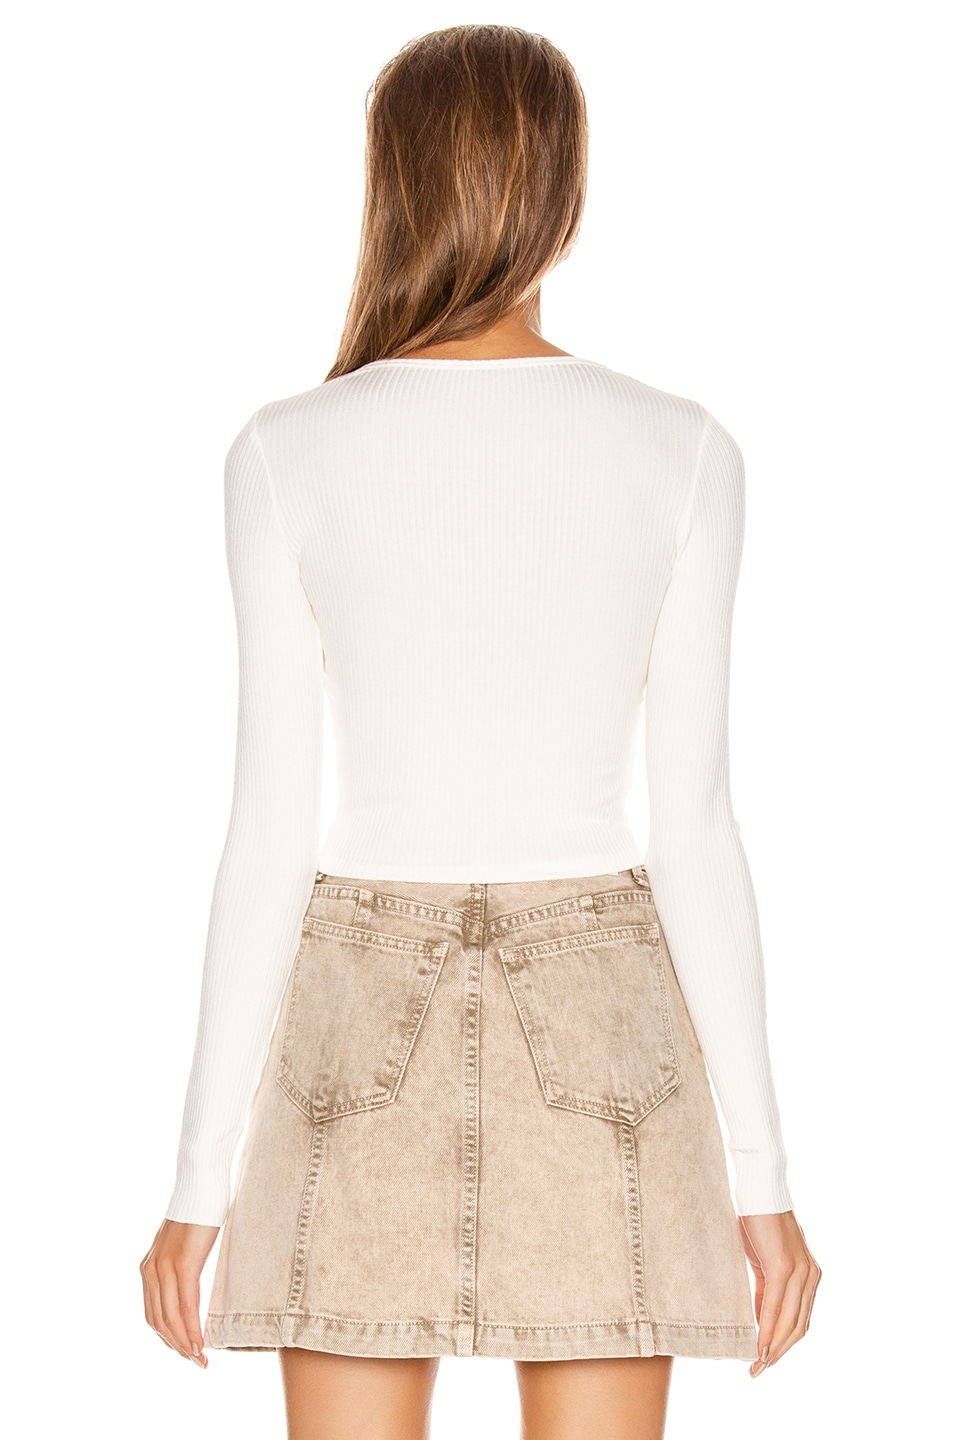 Image 3 of The Range Alloy Rib Cropped Button Down Top in White